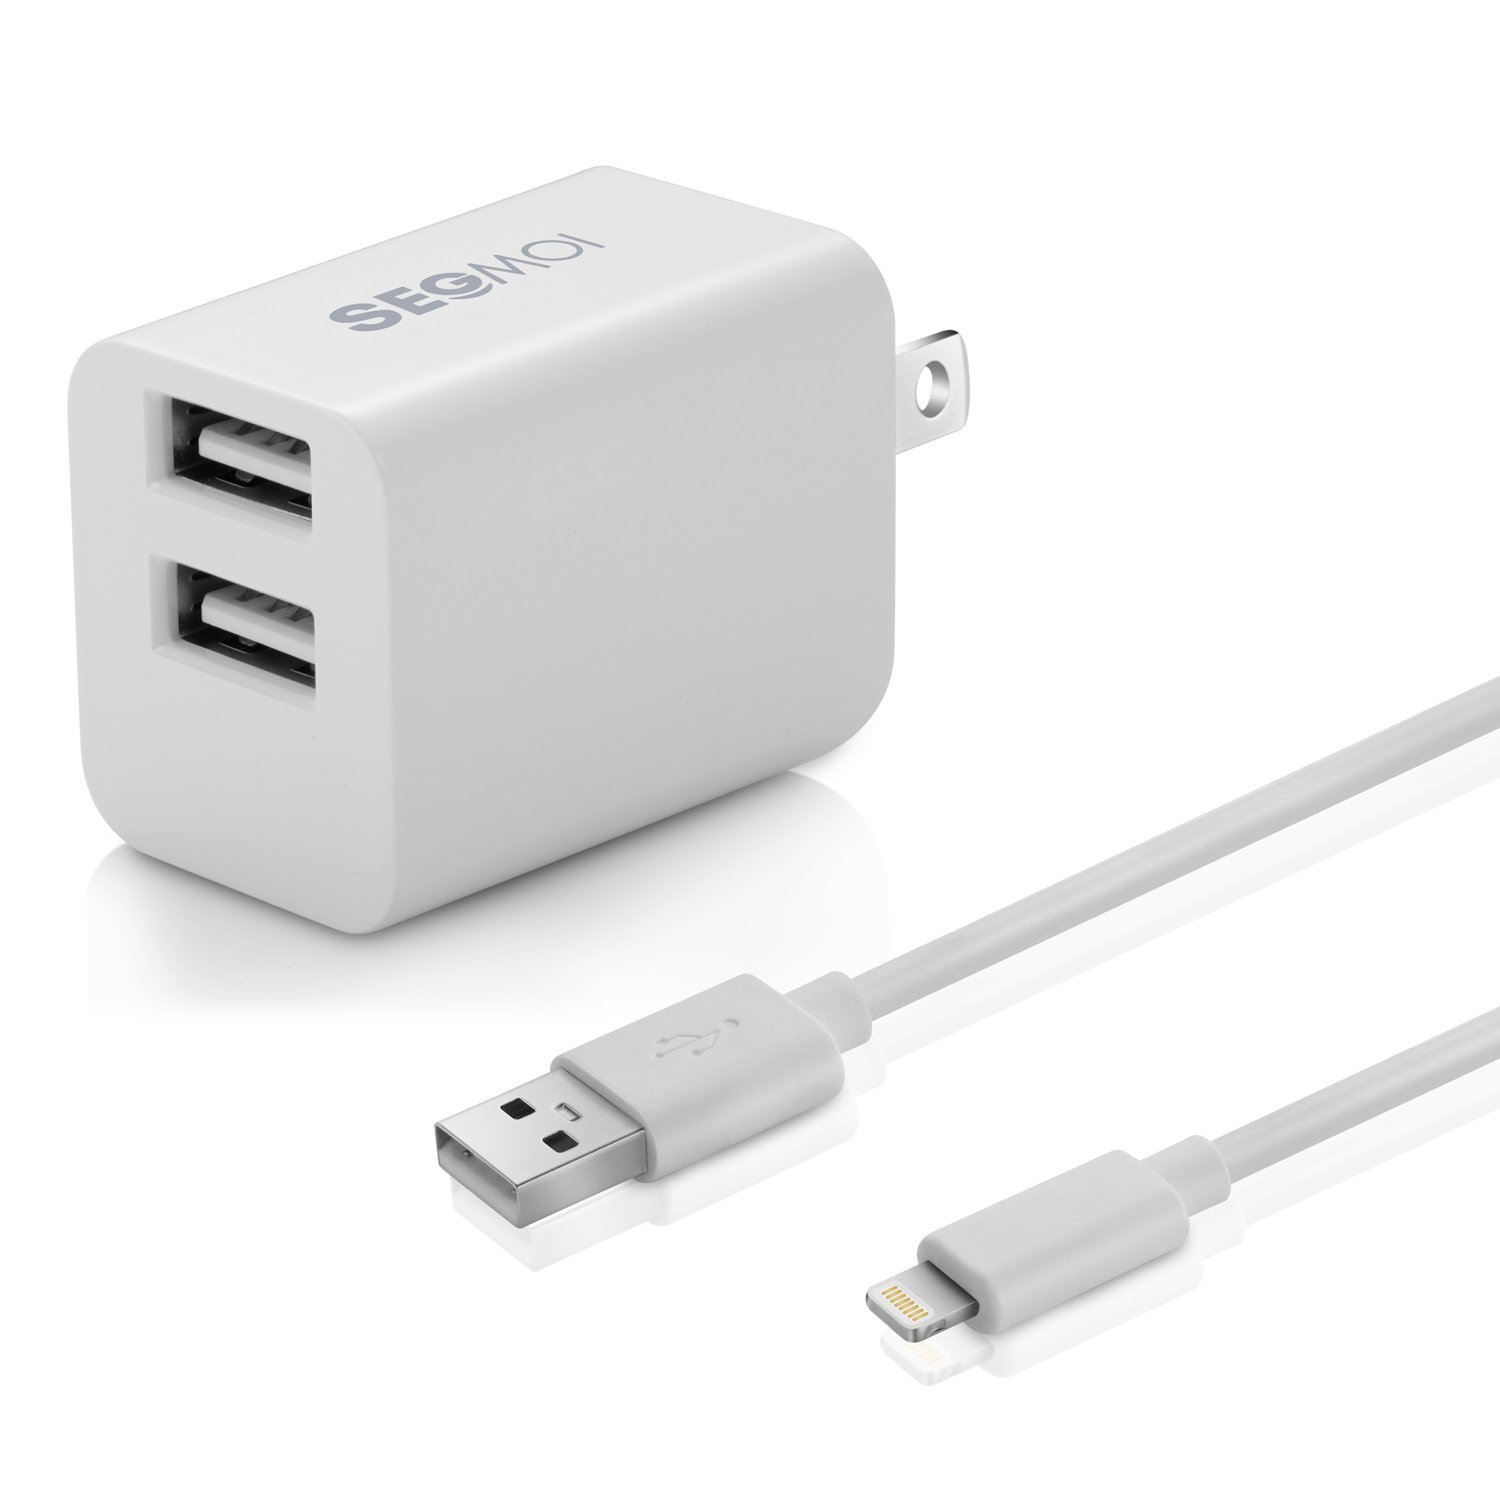 2in1 [ Apple MFi Certified ] 10Ft Lightning Cable/Cord + 5V/2.4A Dual Port USB Wall Plug Charger Block/Charging Cube/Brick/Box Power Adapter For iPhone XS Max XR X 8 Plus 7 6s 6 5s 5 iPad Air Pro Mini